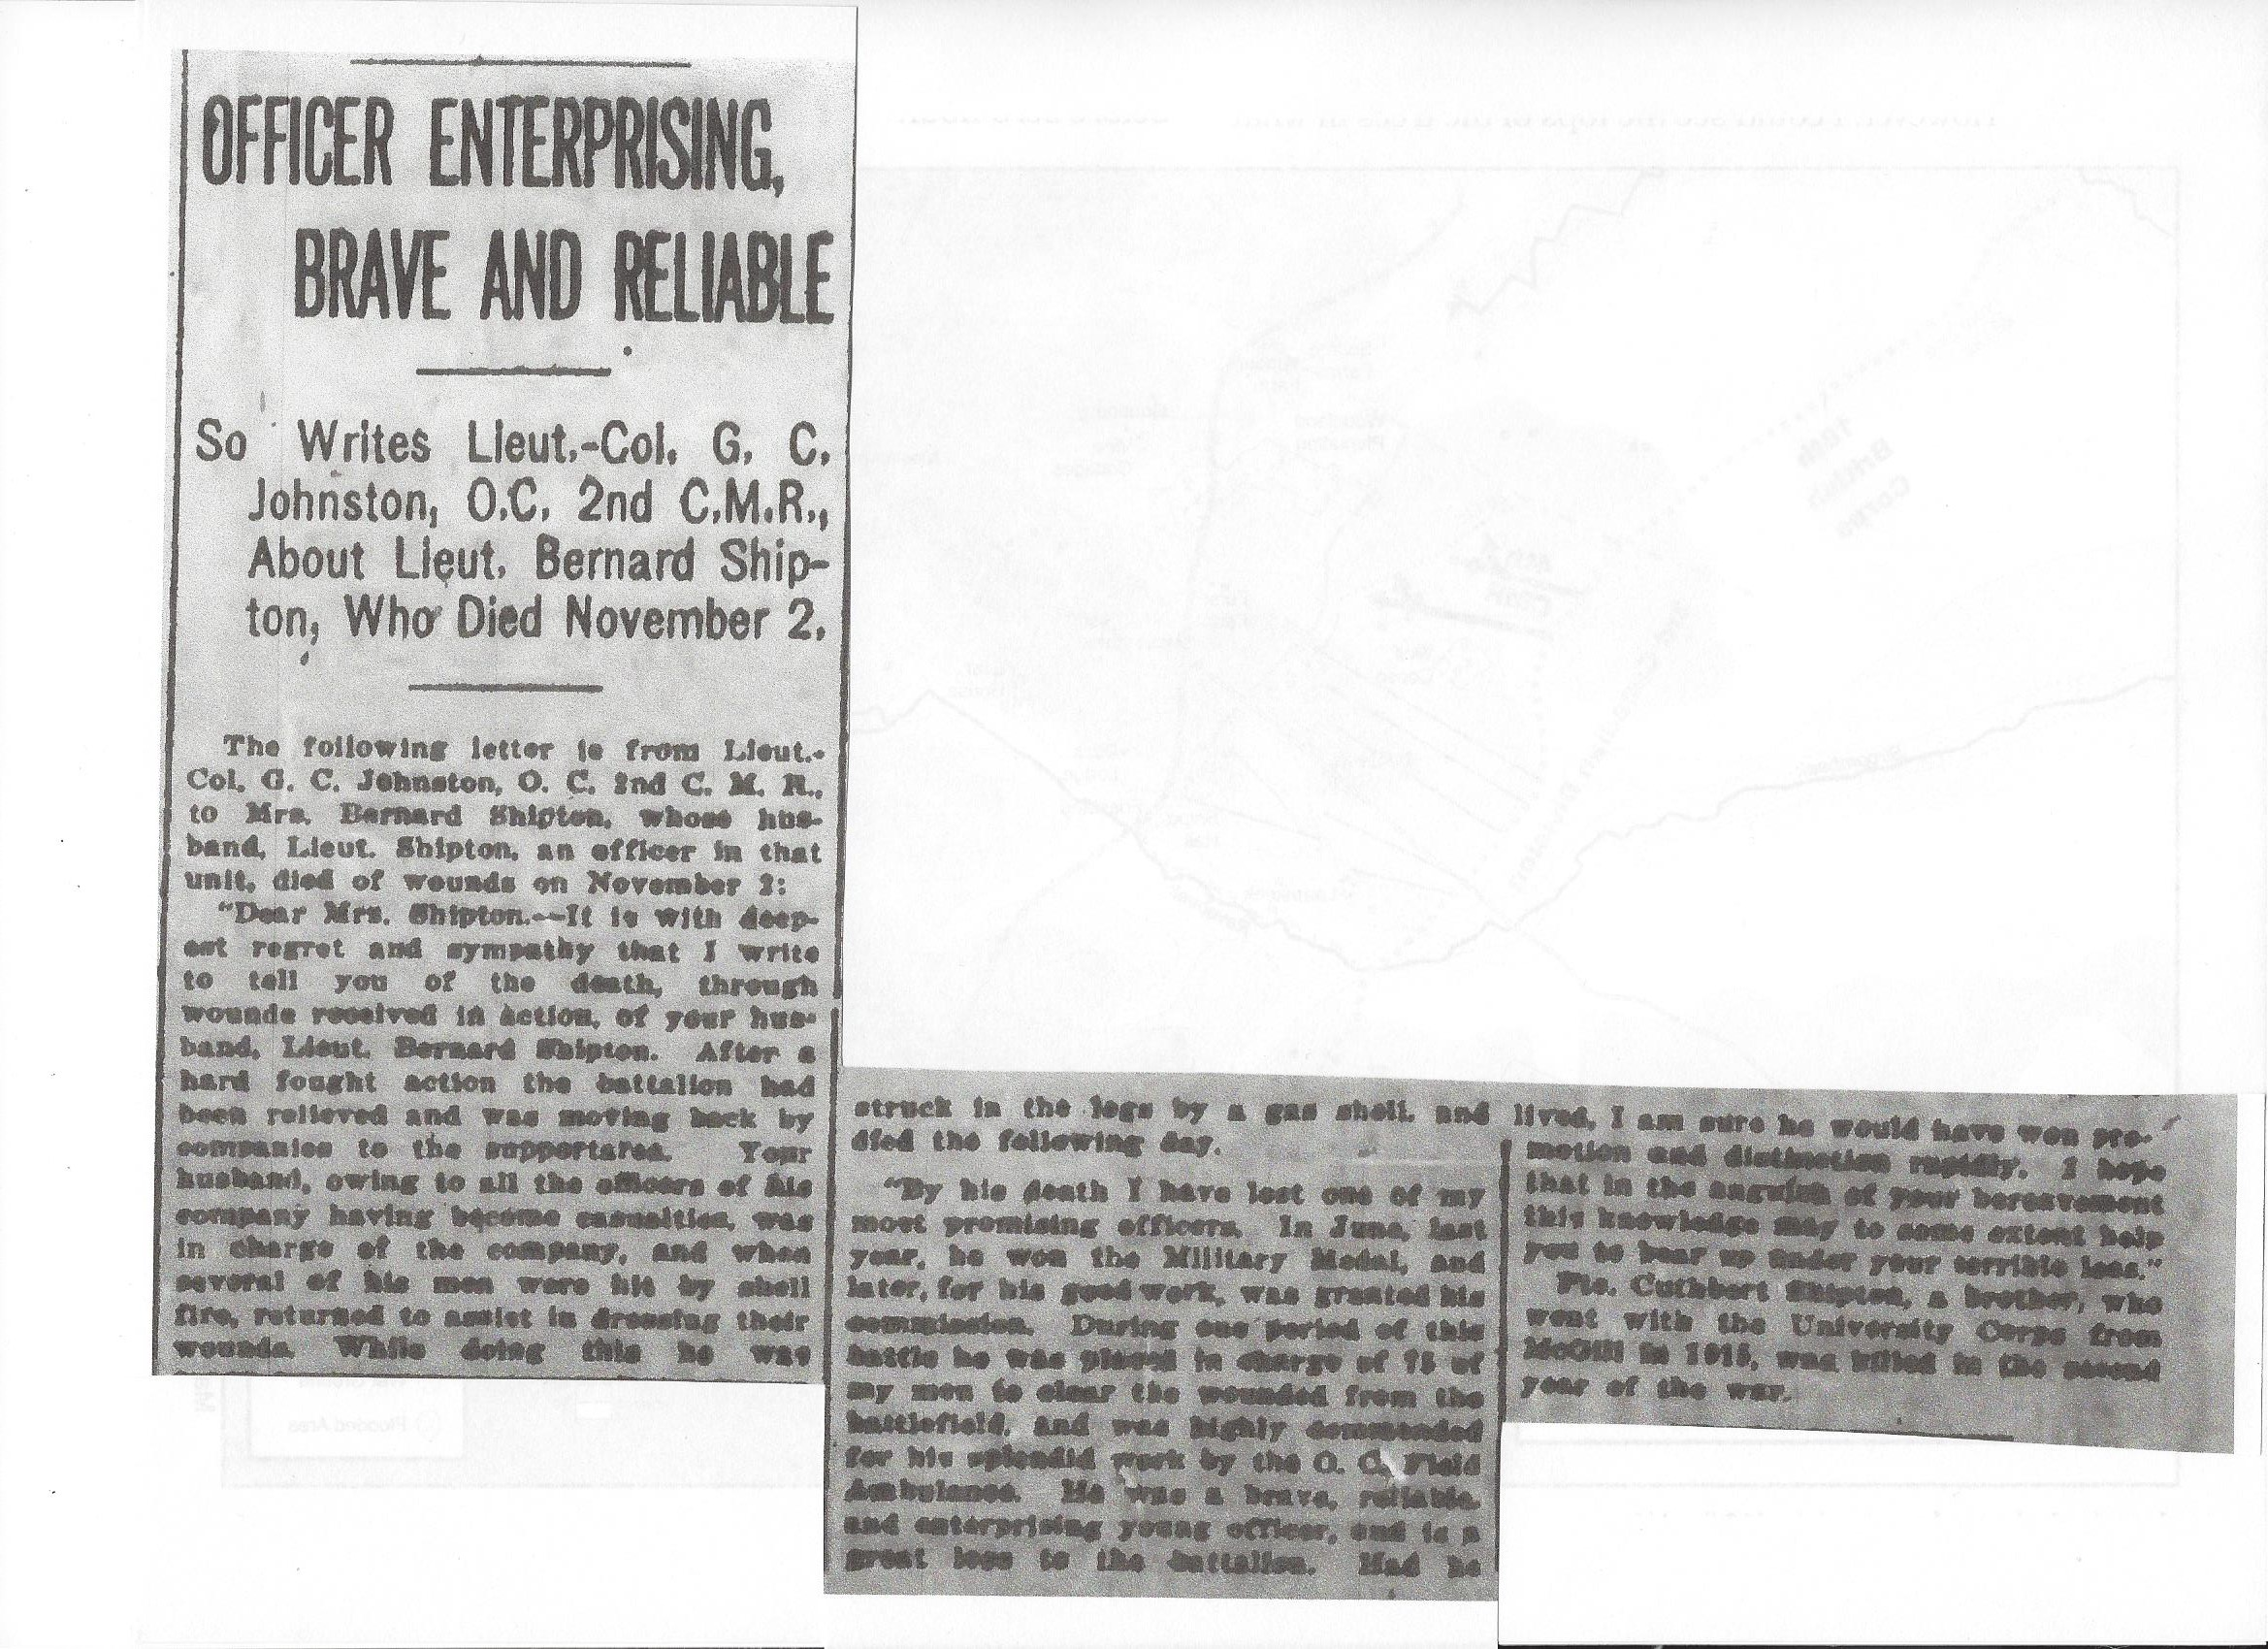 Newspaper Clipping– Newspaper clipping from the Daily Colonist of November 30, 1917. Image taken from web address of http://archive.org/stream/dailycolonist59y306uvic#page/n0/mode/1up